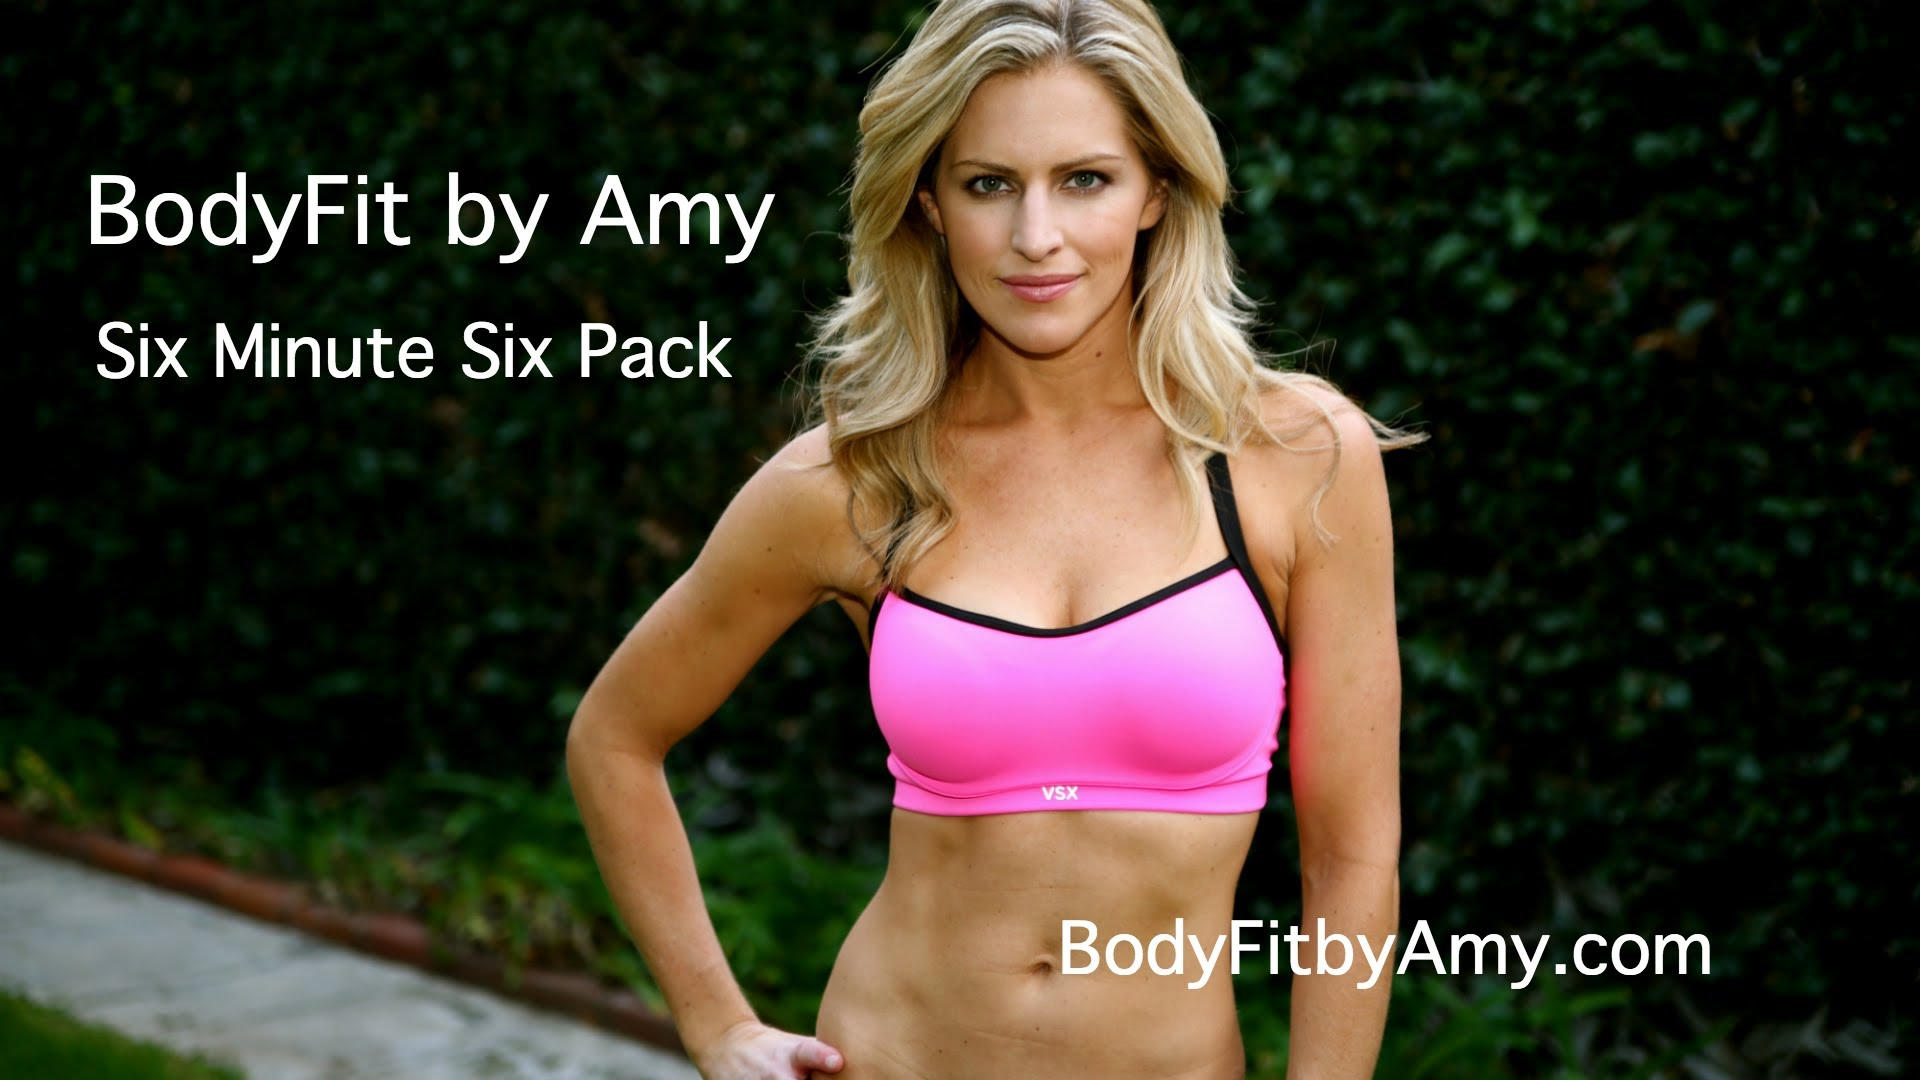 Six Minute Six Pack